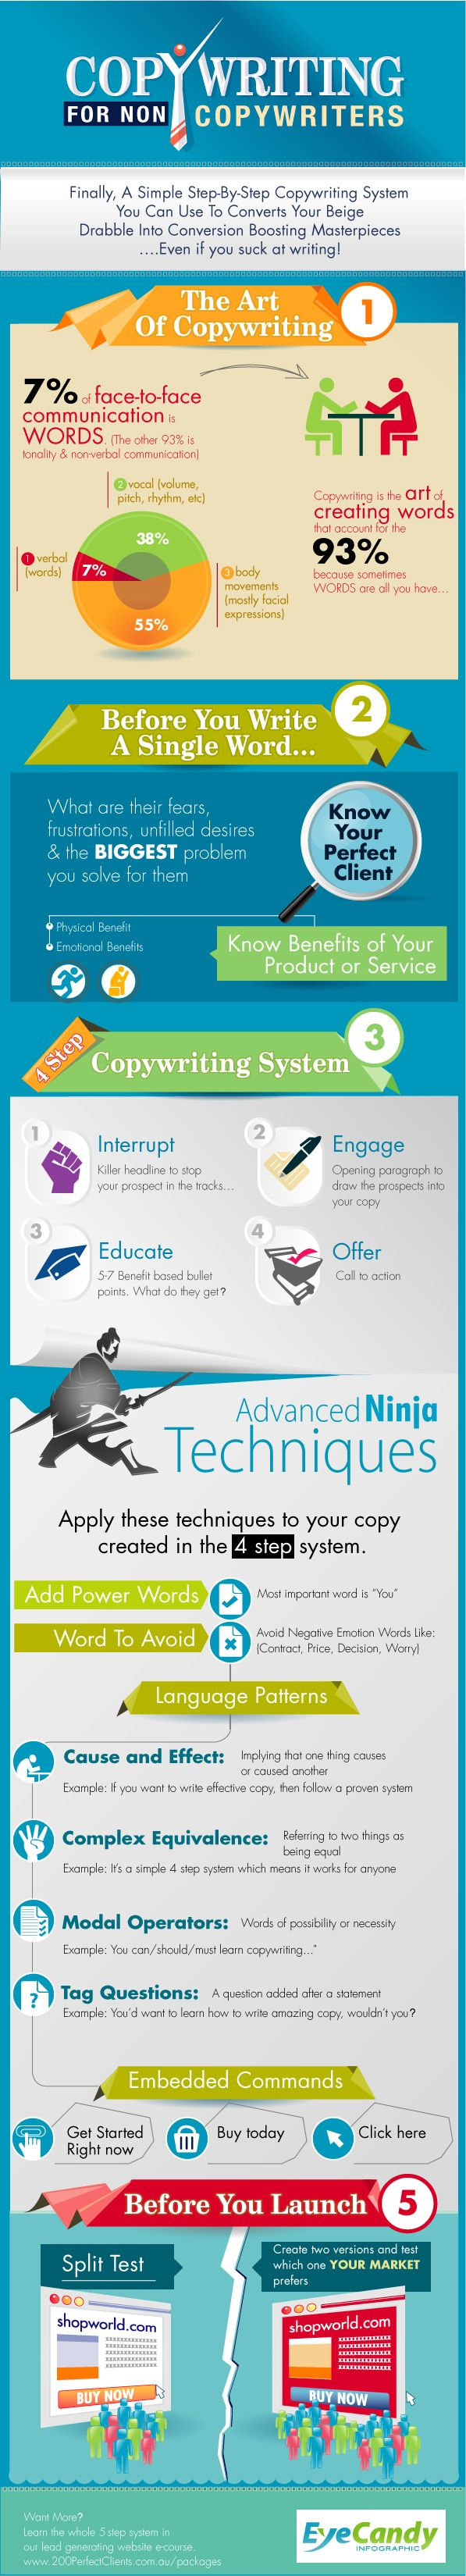 Copy Writing for Non Copywriters